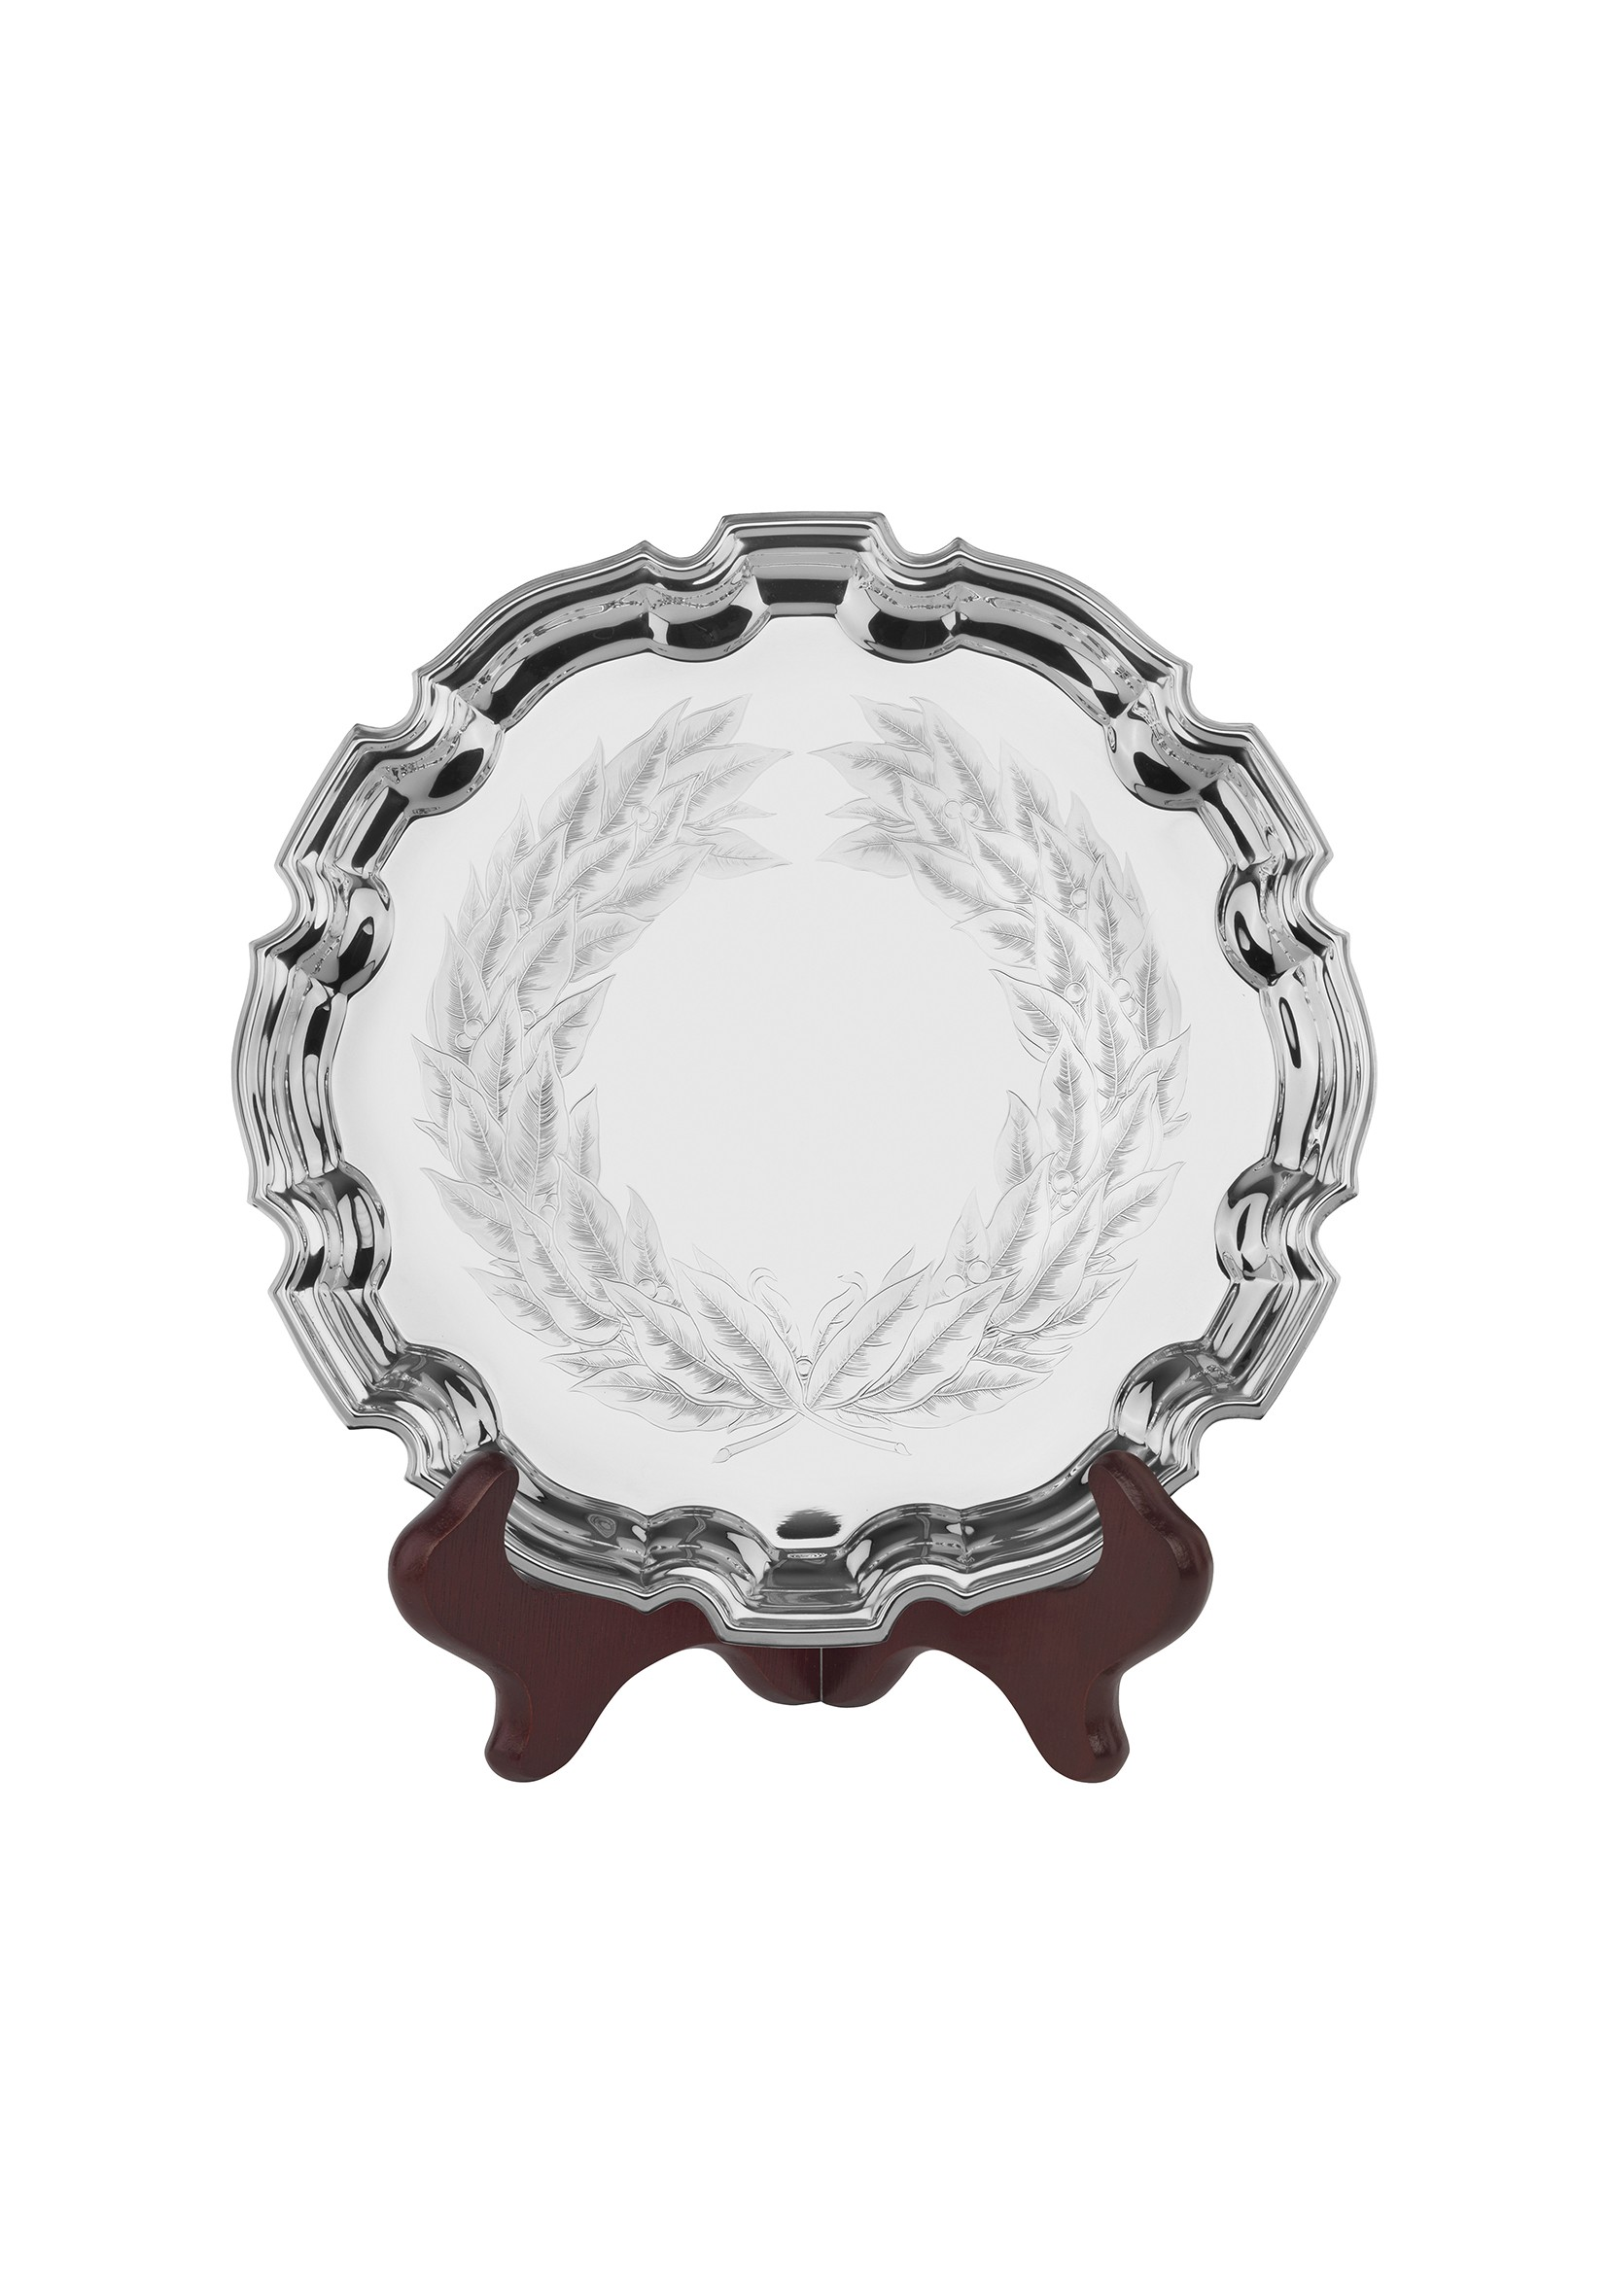 MB 25.5cm Chippendale Tray